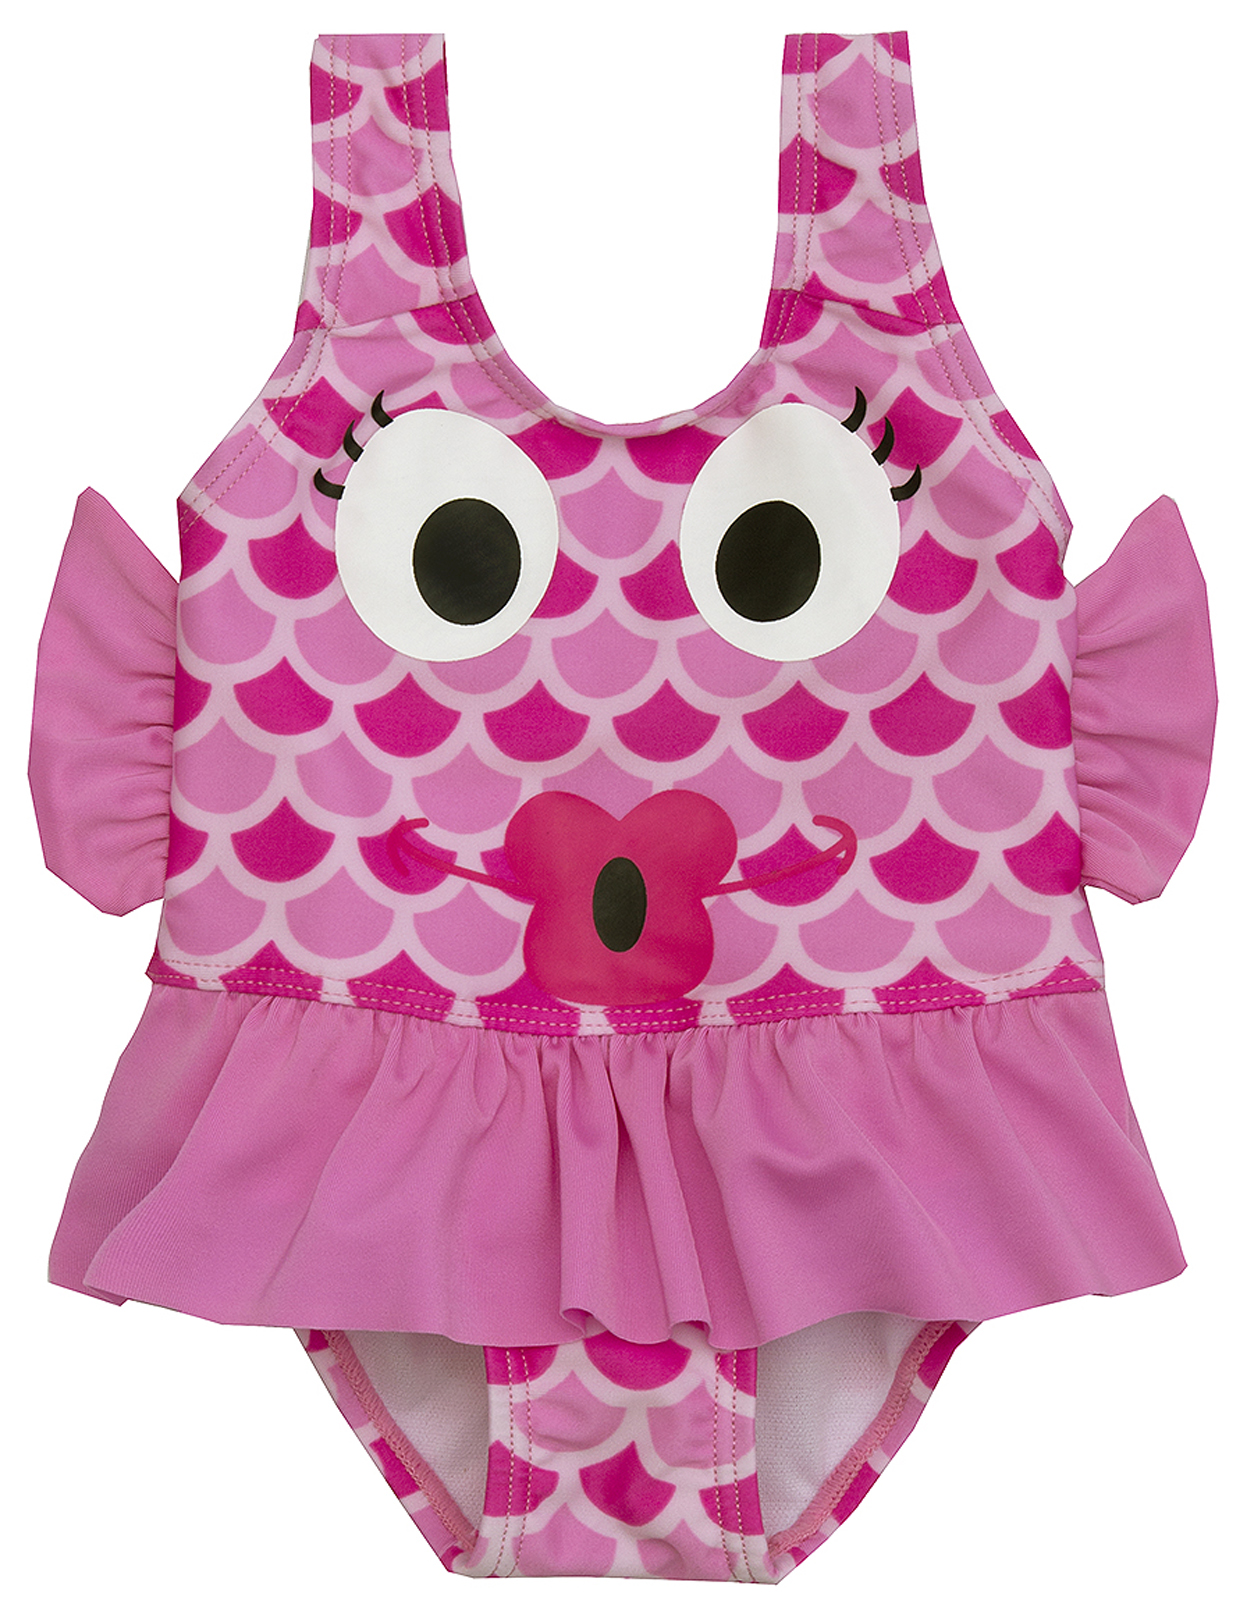 3bc8ab8738 Cute Baby Girls Novelty Character Swimming Costume Toddlers Swim ...